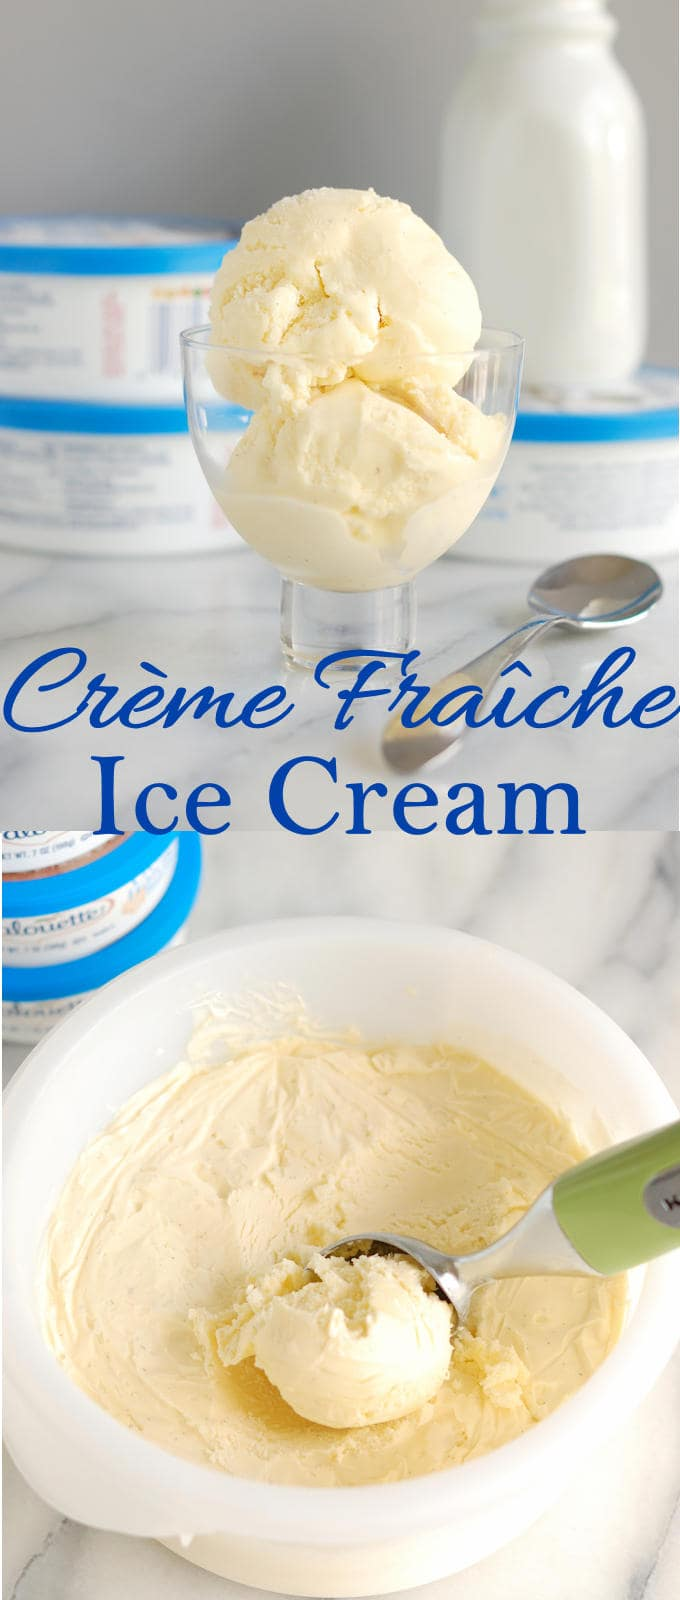 Creme Fraiche has a very special flavor and it makes a super delicious ice cream. If you love creme fraiche, you'll love this ice cream.